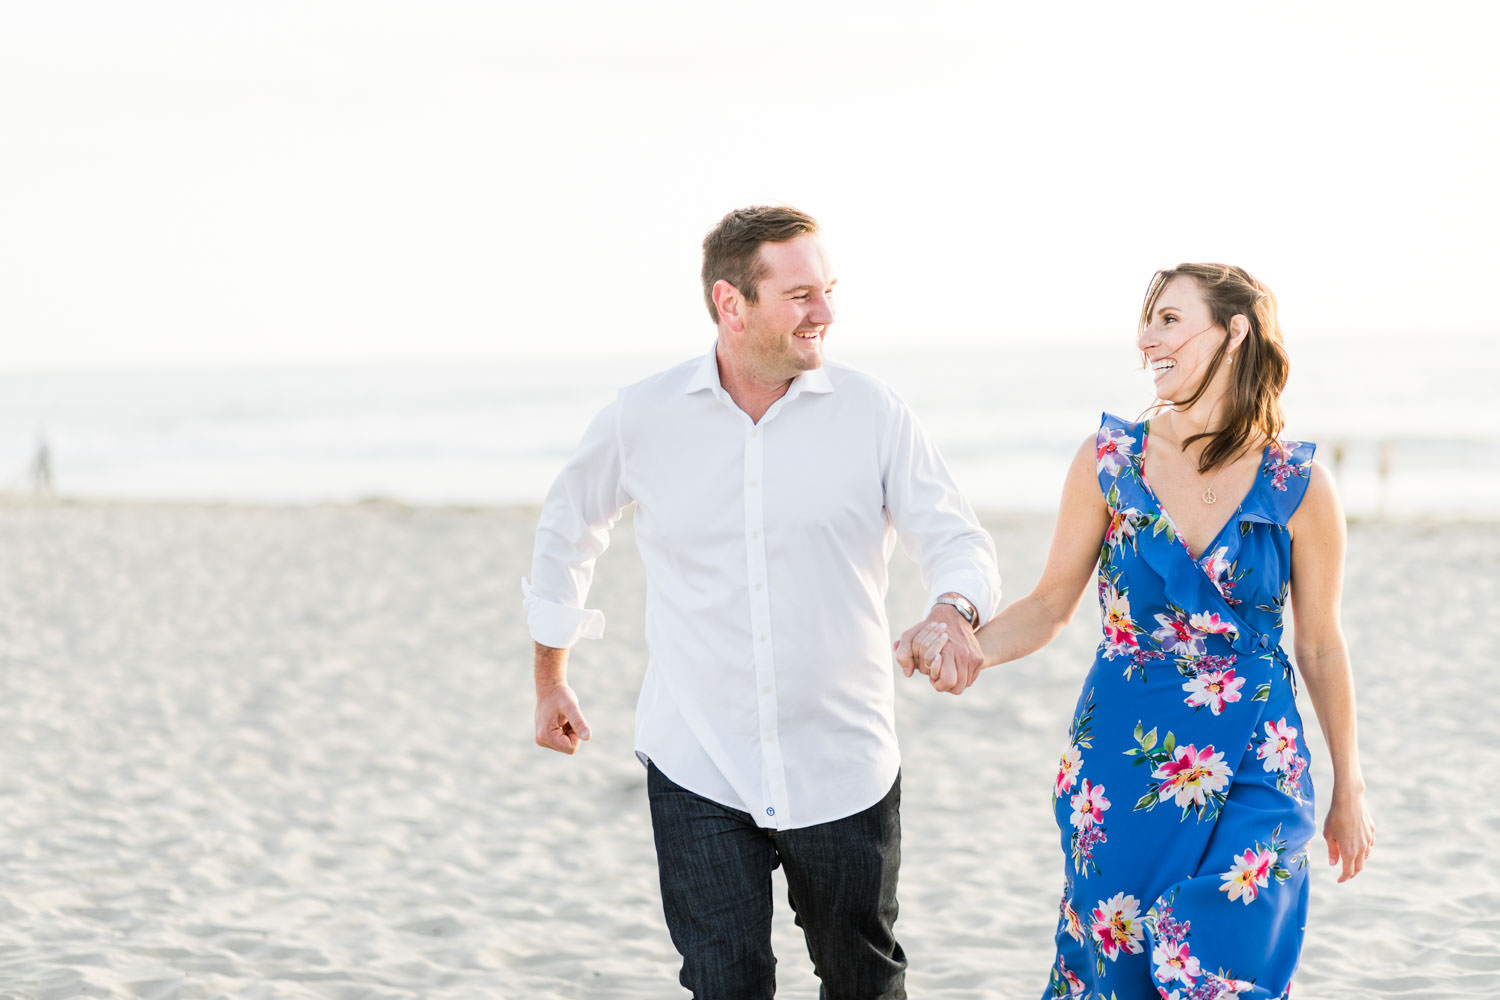 Couple running in engagement photo, Blue floral dress, Mission Beach Engagement Photo on the sand, Cavin Elizabeth Photography